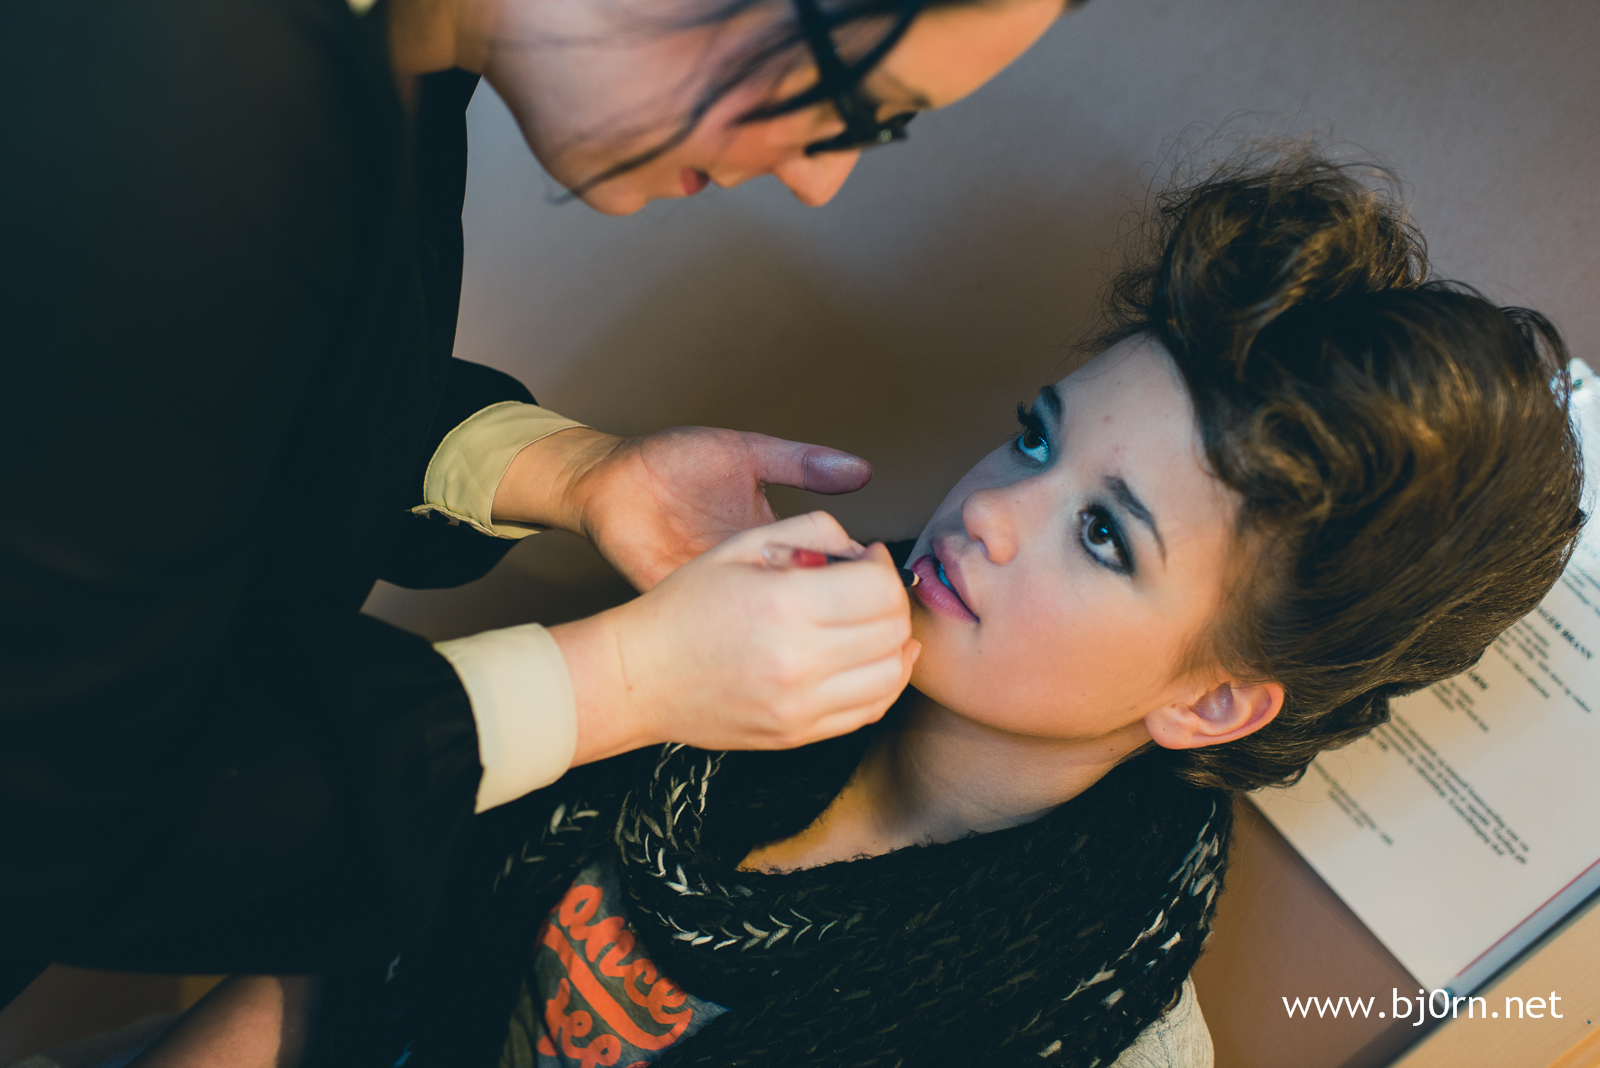 Backstage - Fashion show at Solsiden Senter - October 2012